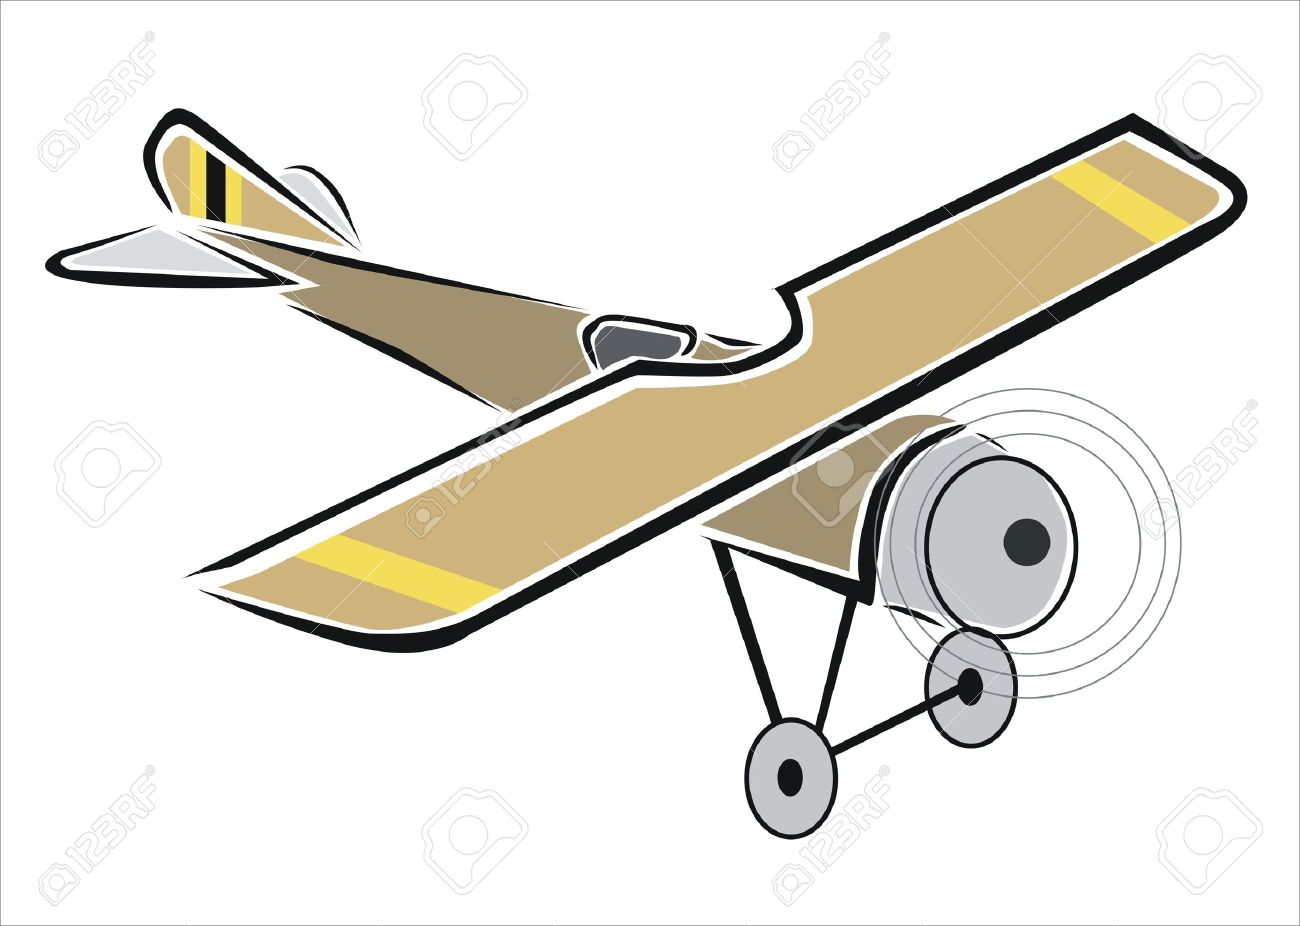 Drawing Of An Old Plane Royalty Free Cliparts Vectors And Stock